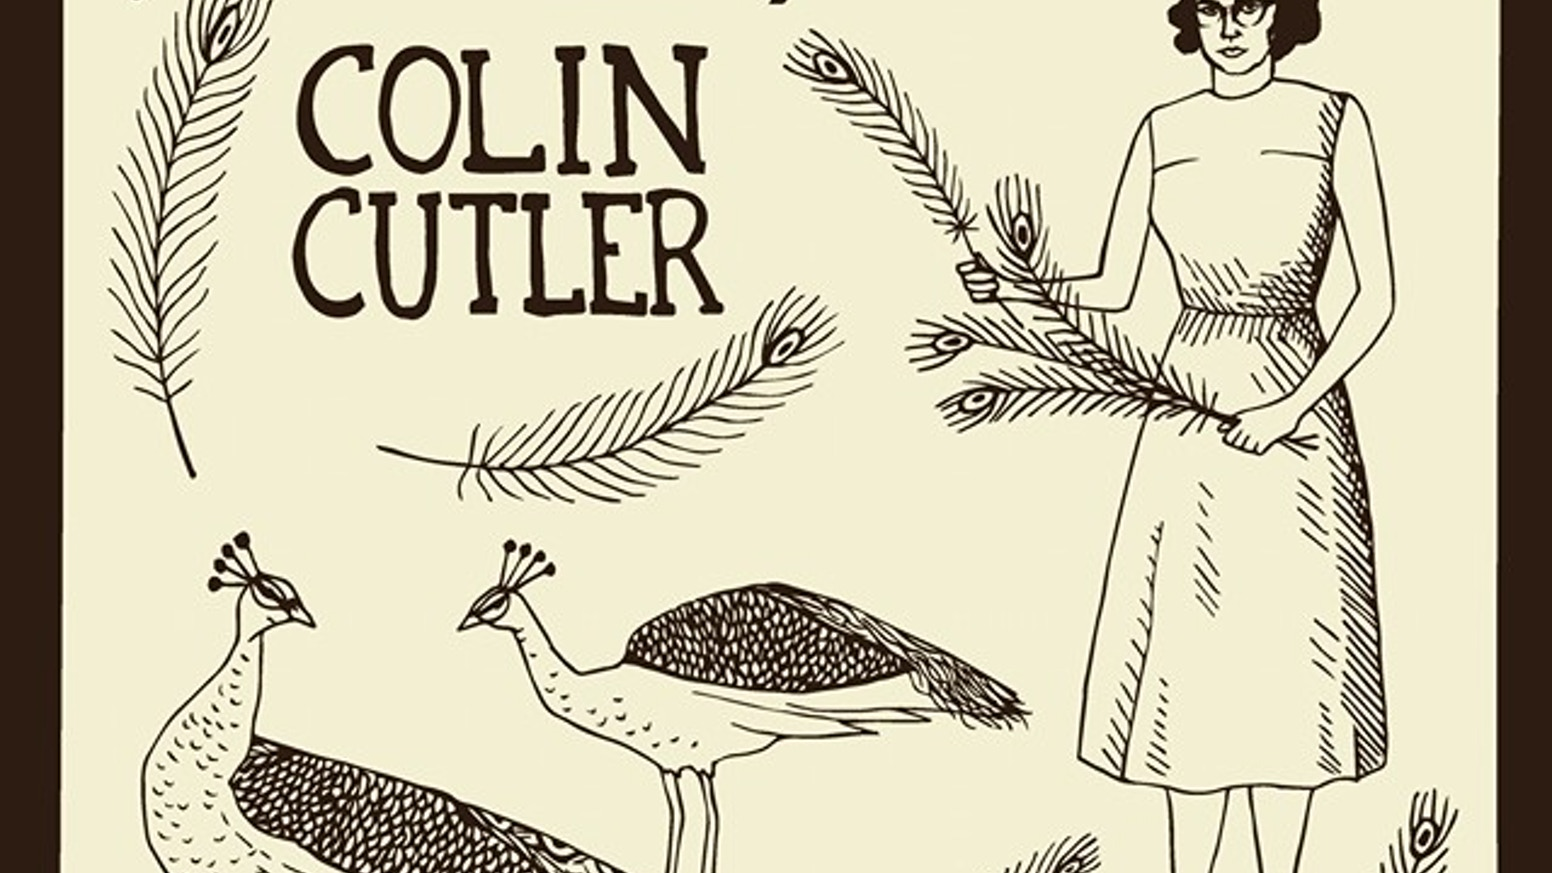 Peacock Feathers EP by Colin Cutler » Watch your mailboxes